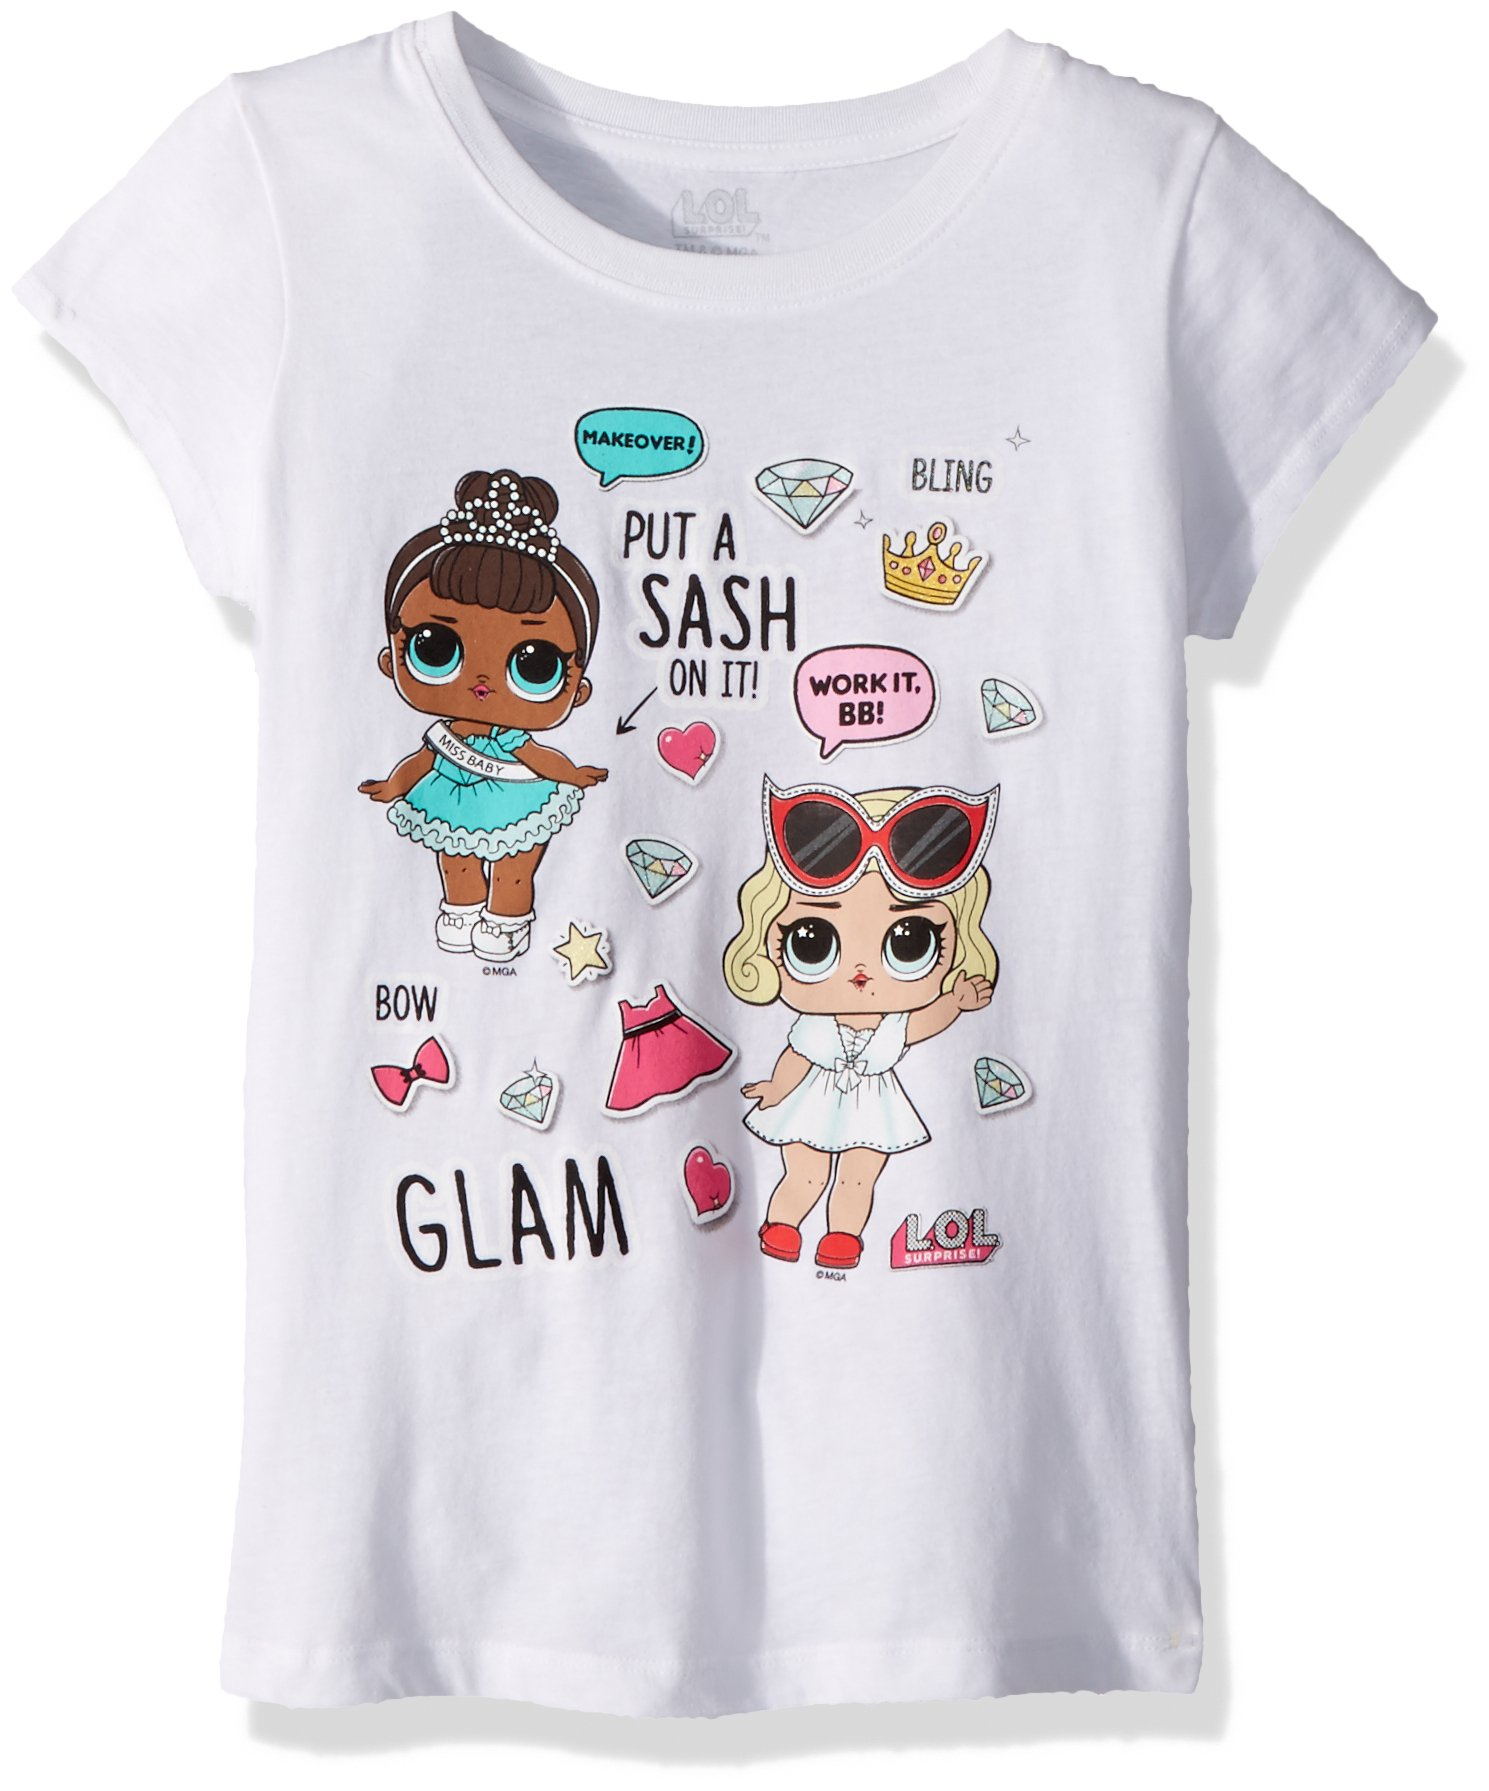 L.O.L. Surprise! Big Girls' Glam Club Miss Leading Baby Short Sleeve T-Shirt, White, XL-16